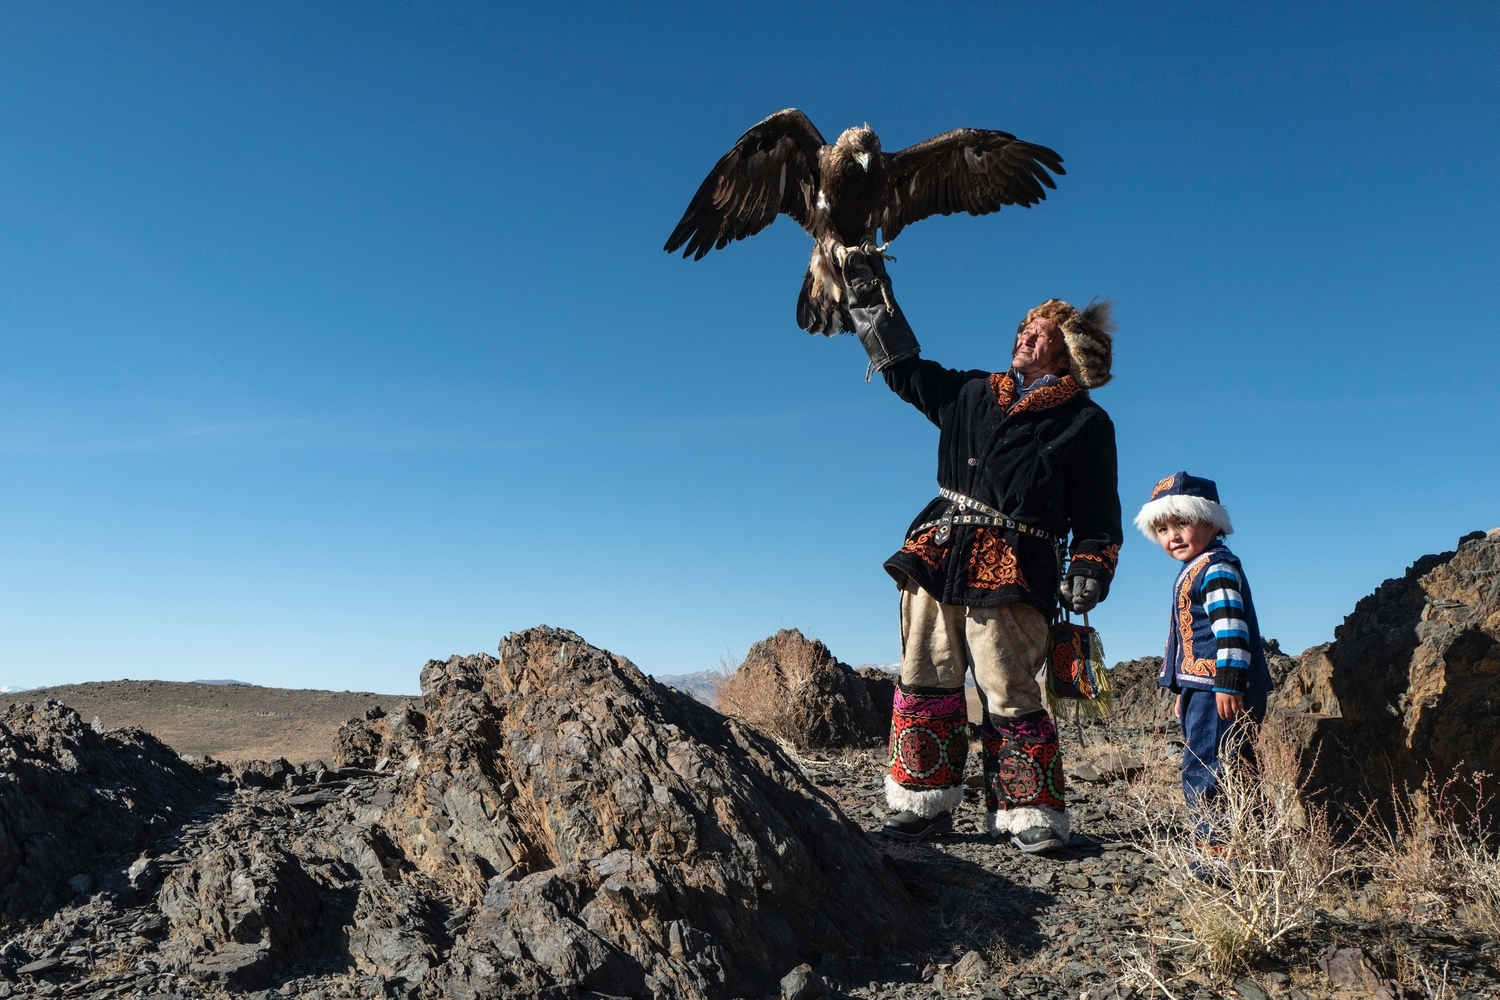 Eagle hunter in Western part of Mongolia